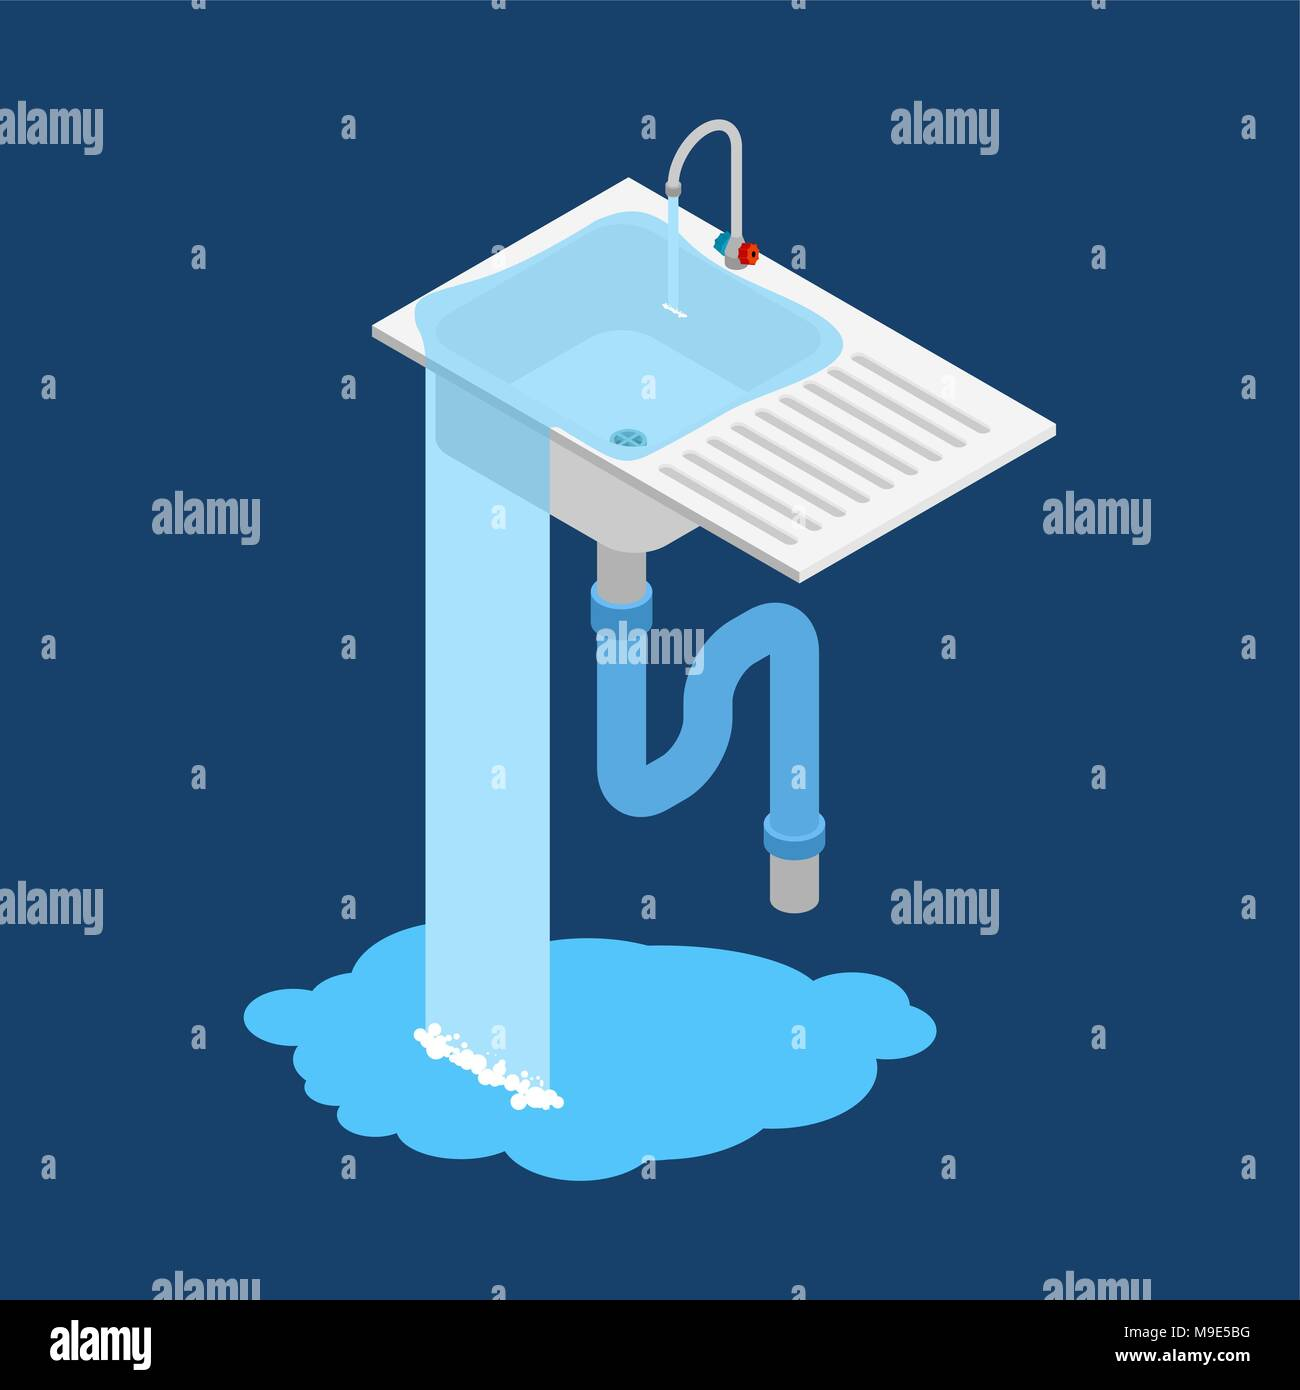 Kitchen Sink Drain Stock Vector Images - Alamy